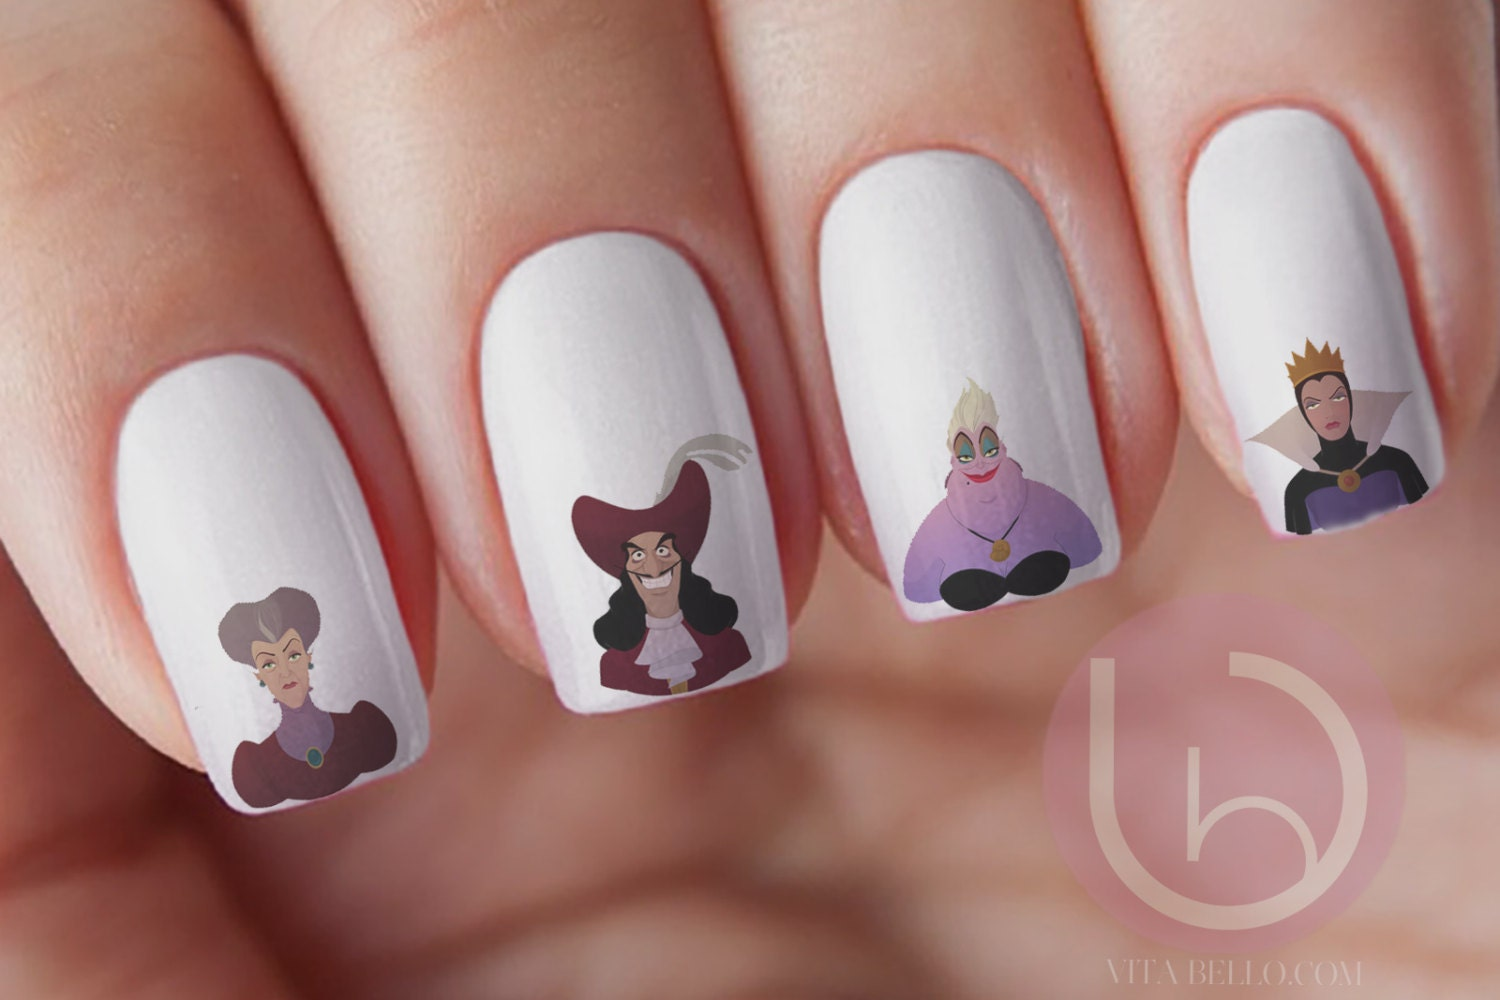 Nail Art Ideas » Disney Nail Art Stickers - Pictures of Nail Art ...